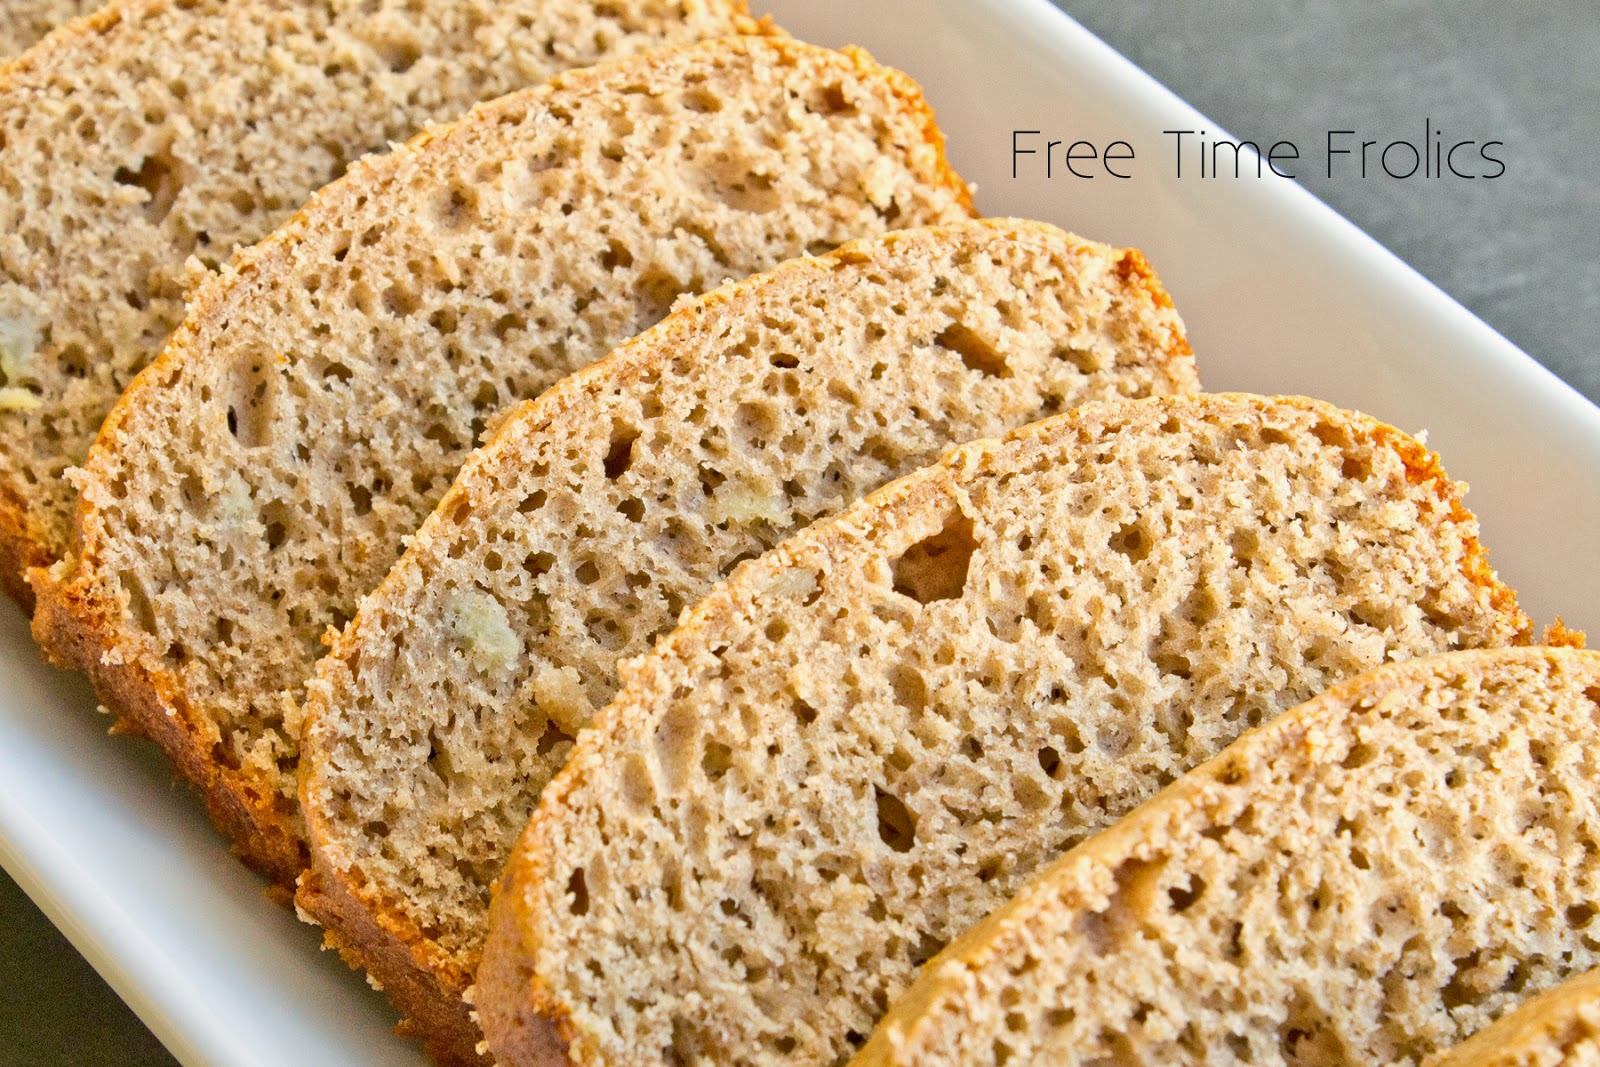 easy spiced banana bread www.freetimefrolics.com